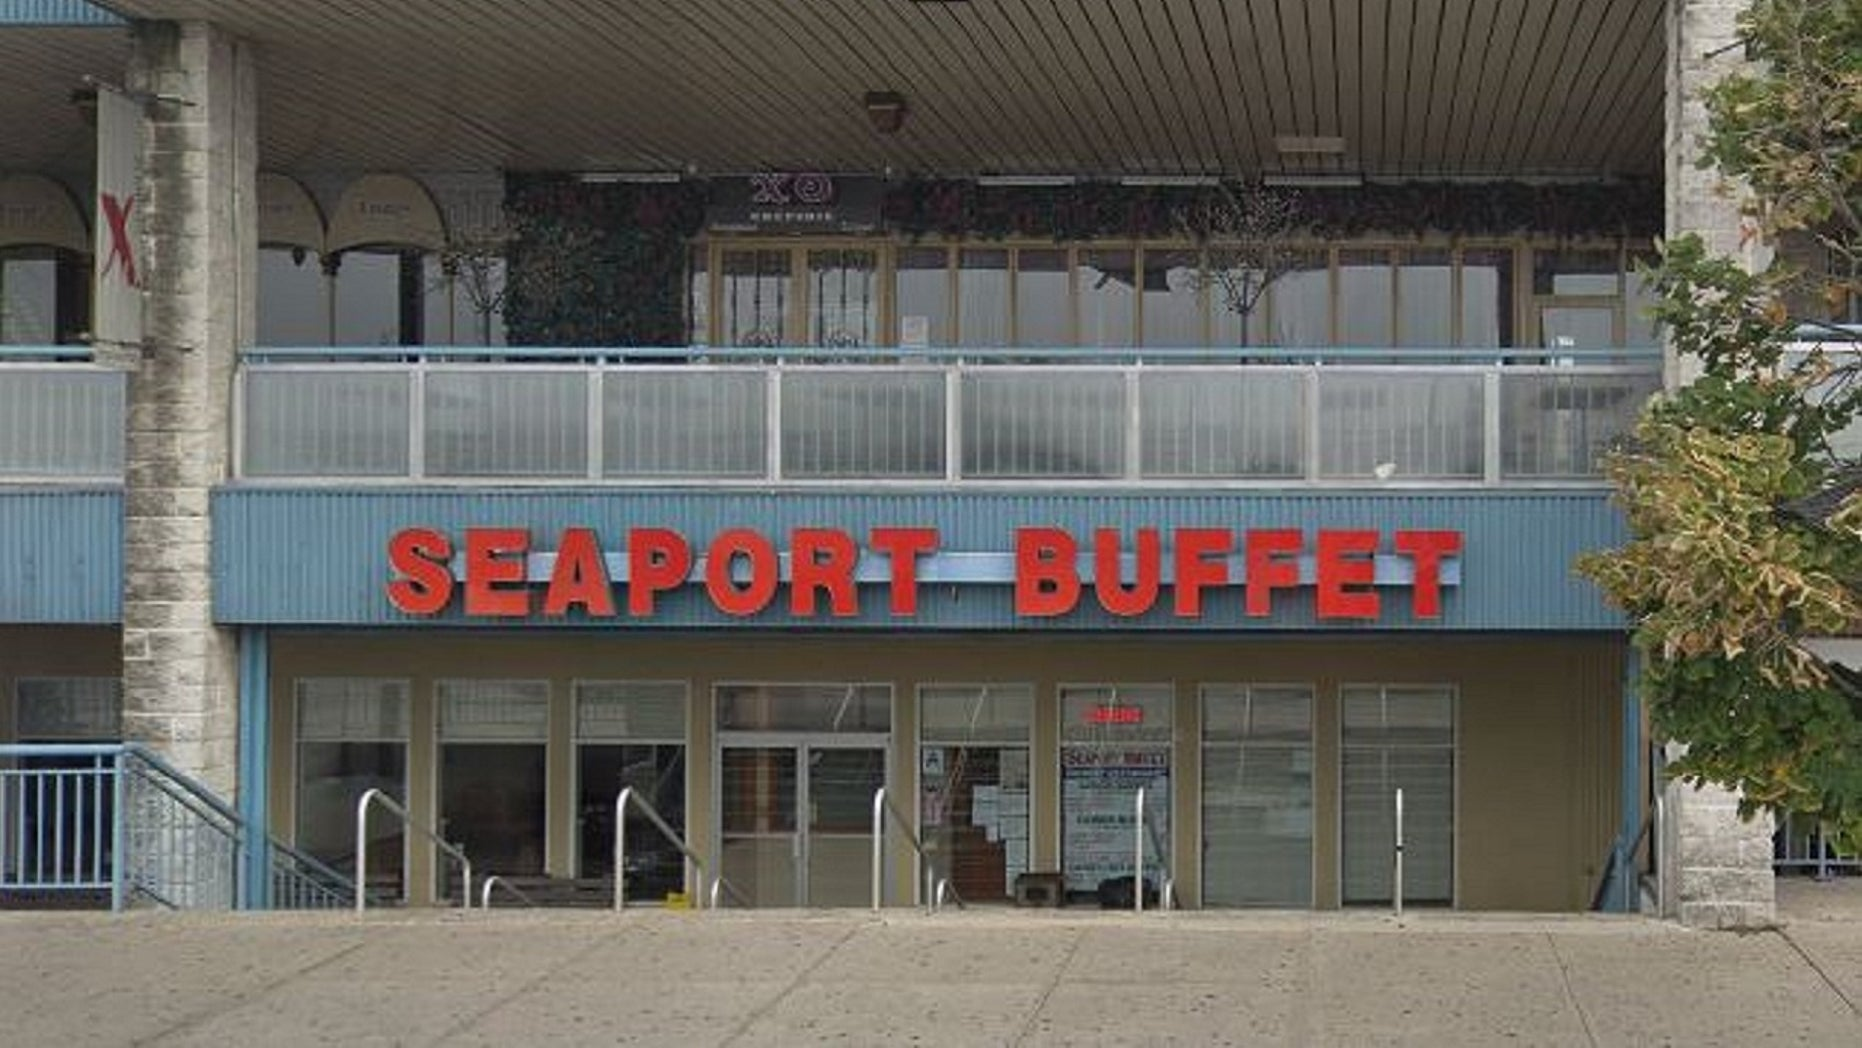 A third victim of a fatal hammer attack, at Seaport Buffet in Brooklyn, N.Y., on Jan. 15, has died on Thursday, officials said. (Google Maps)